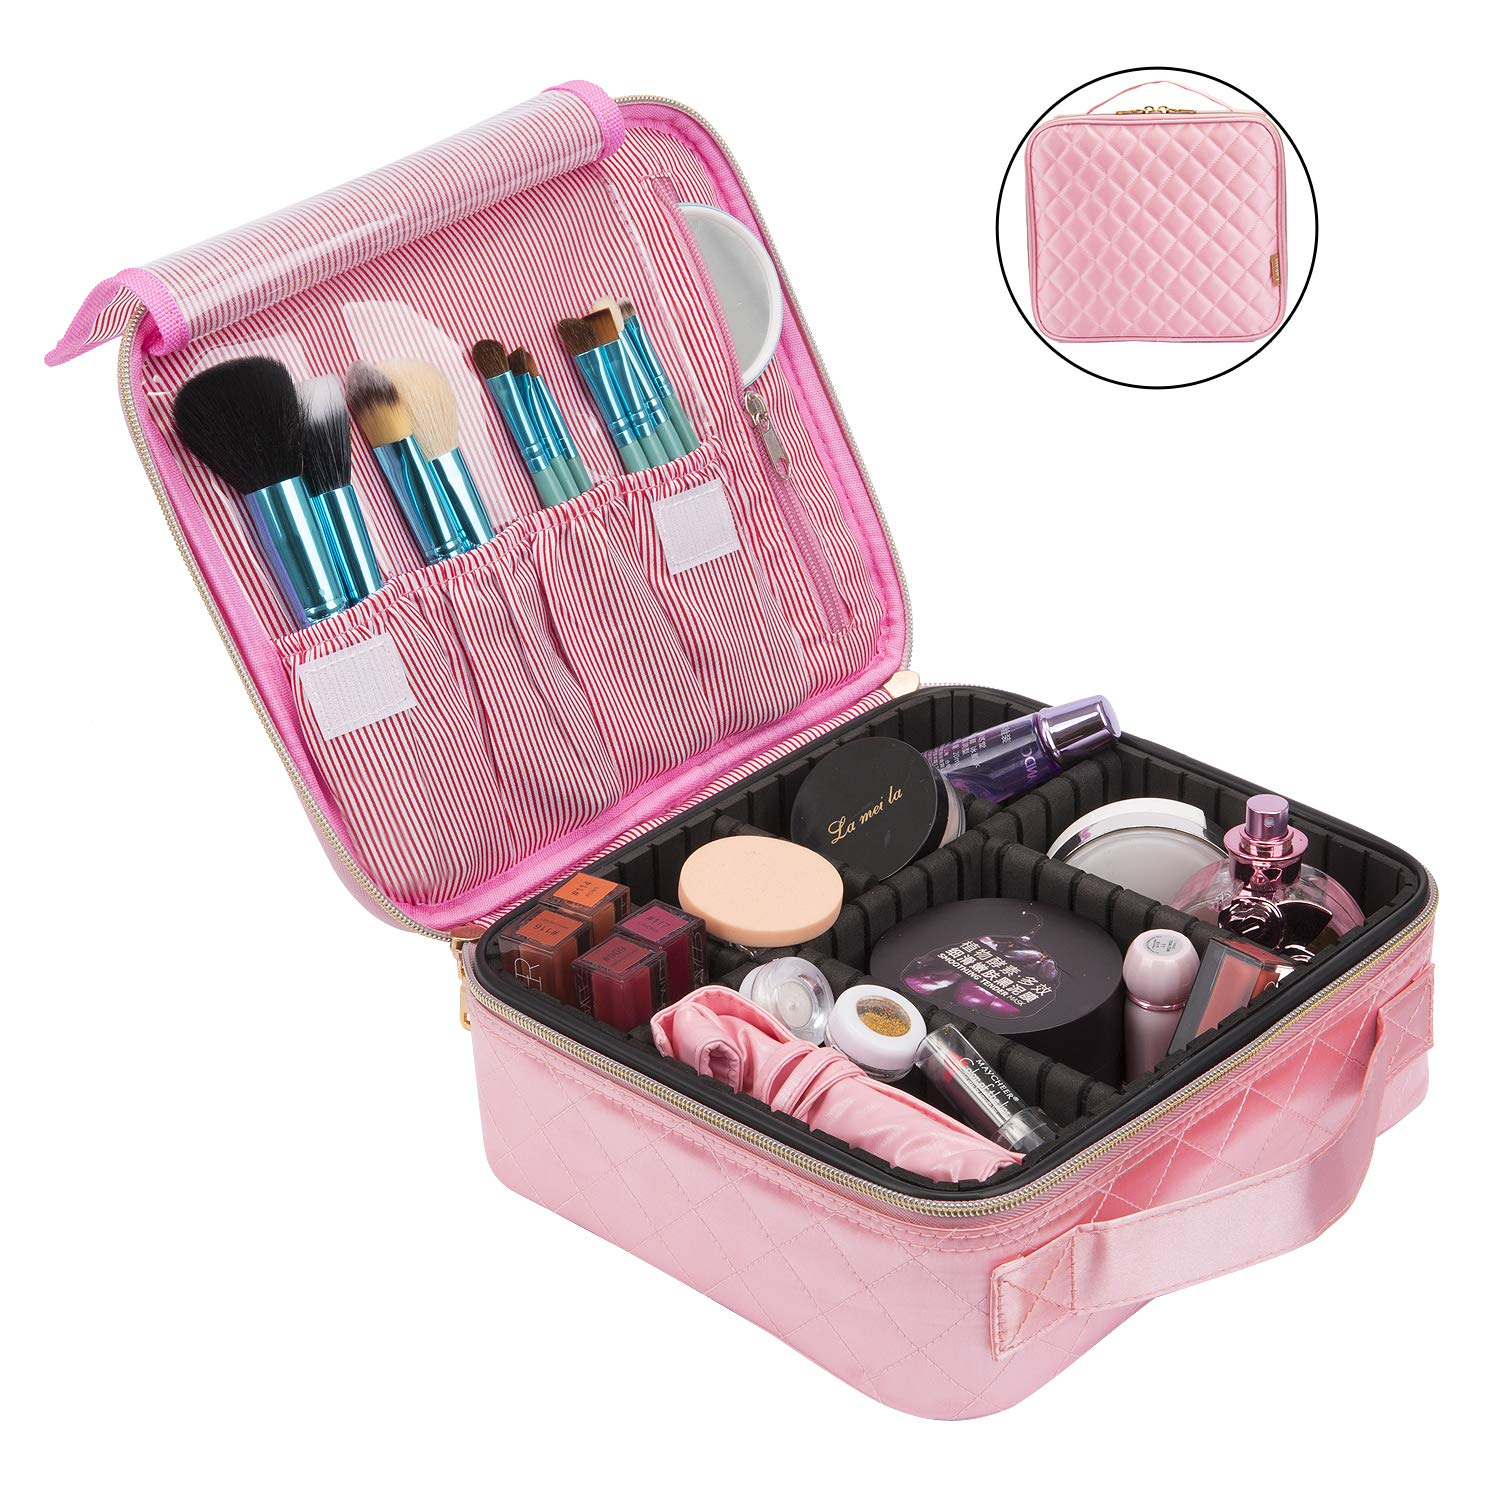 Pink Travel Makeup Bag for Women, Professional Train Case Nylon Cosmetic Storage Organizer